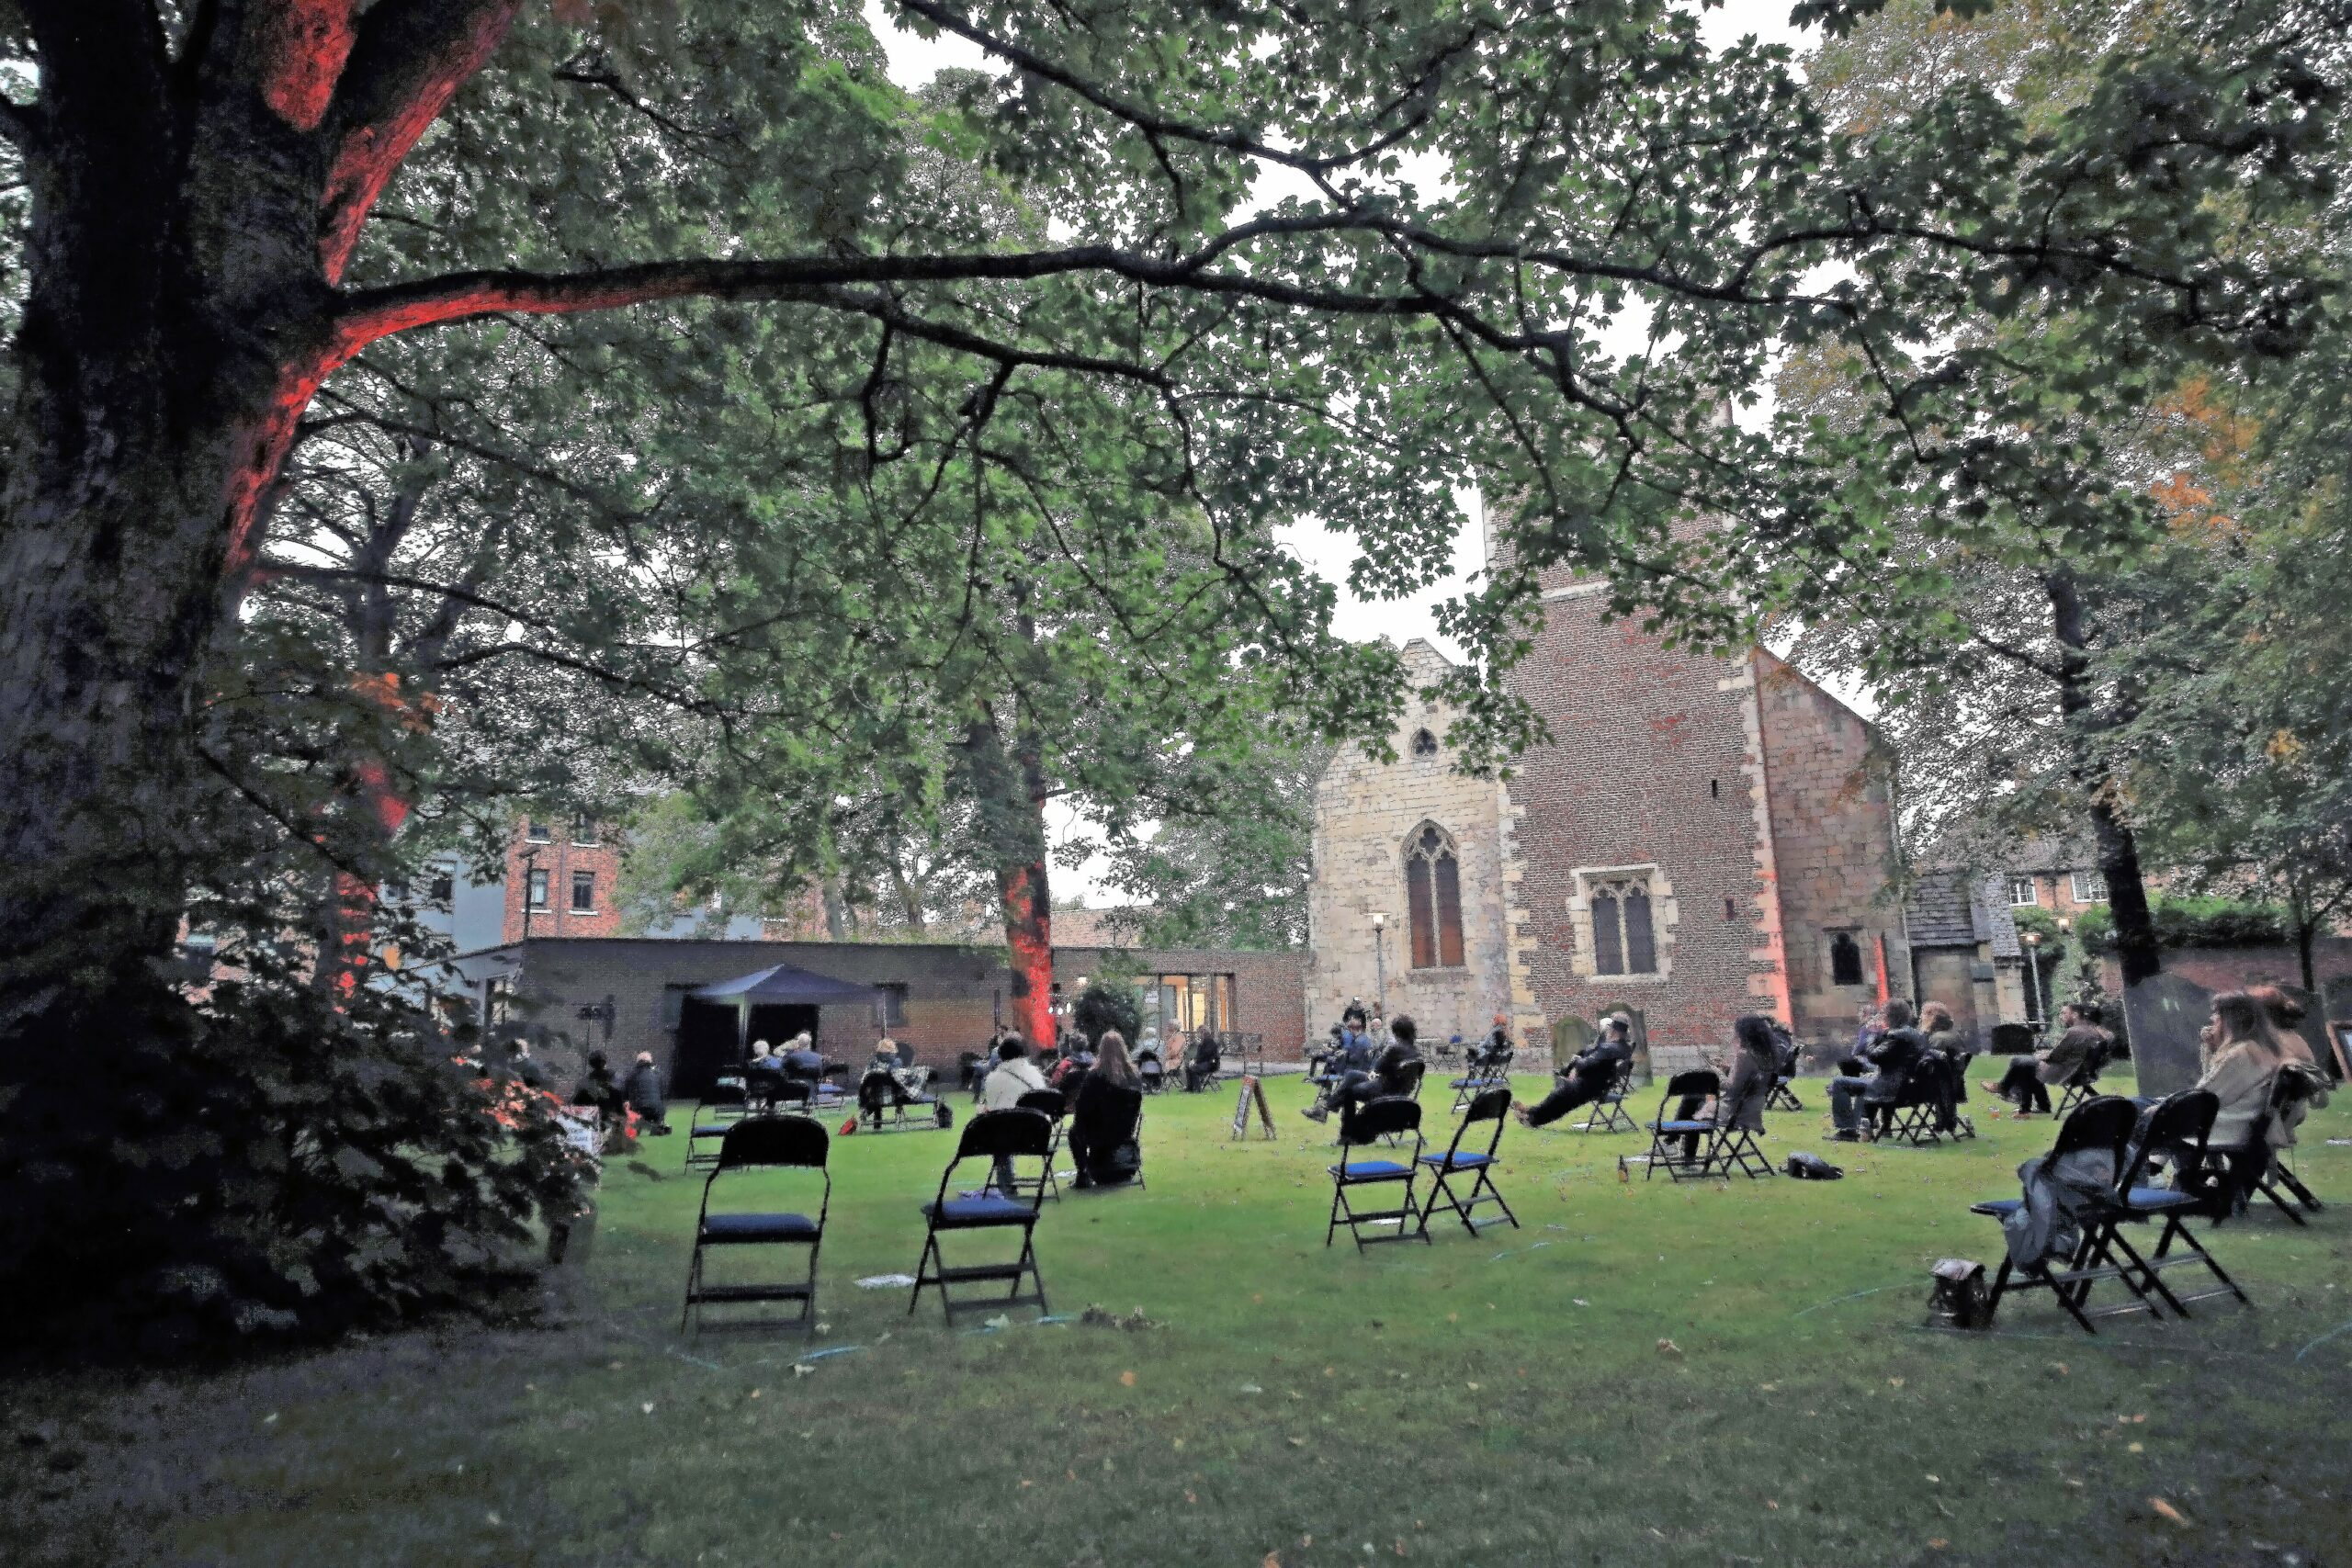 News: Songs Under Skies returns to the National Centre for Early Music in York